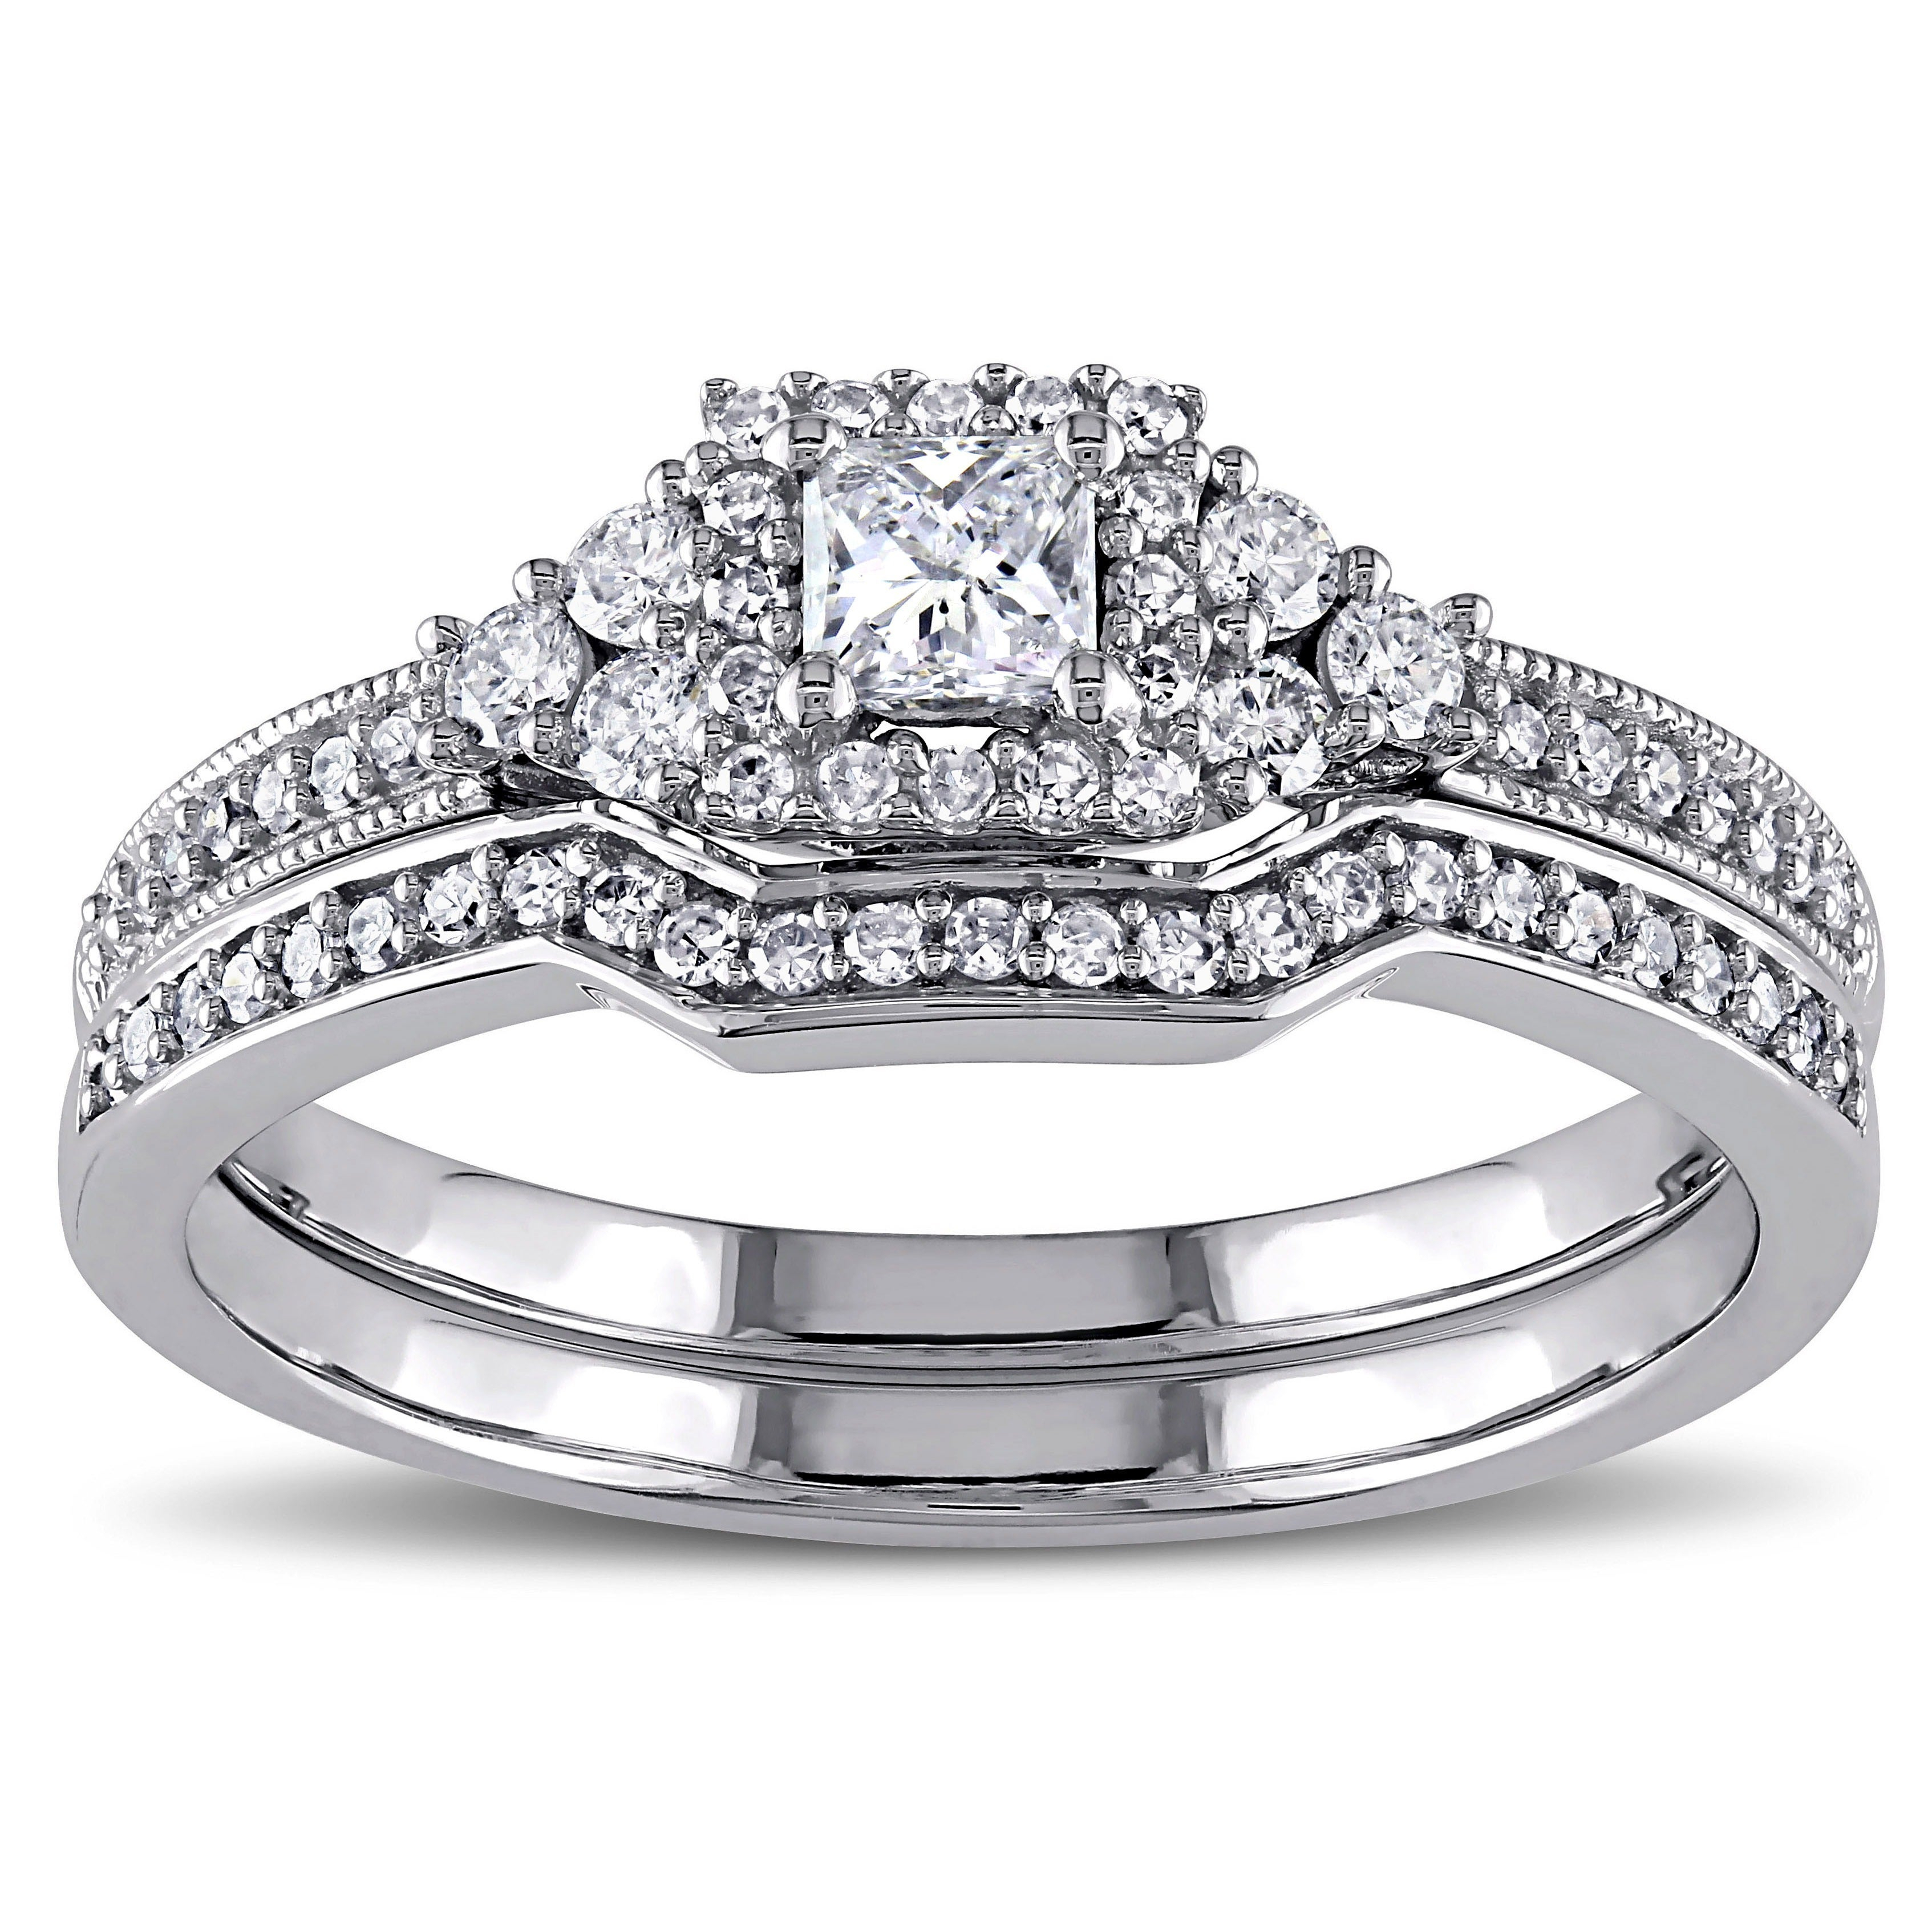 Miadora Signature Collection 14k White Gold 5/8ct Tdw Princess Cut Diamond Certified Bridal Ring Set Intended For Latest Certified Princess Cut Diamond Contour Anniversary Bands In White Gold (View 10 of 25)